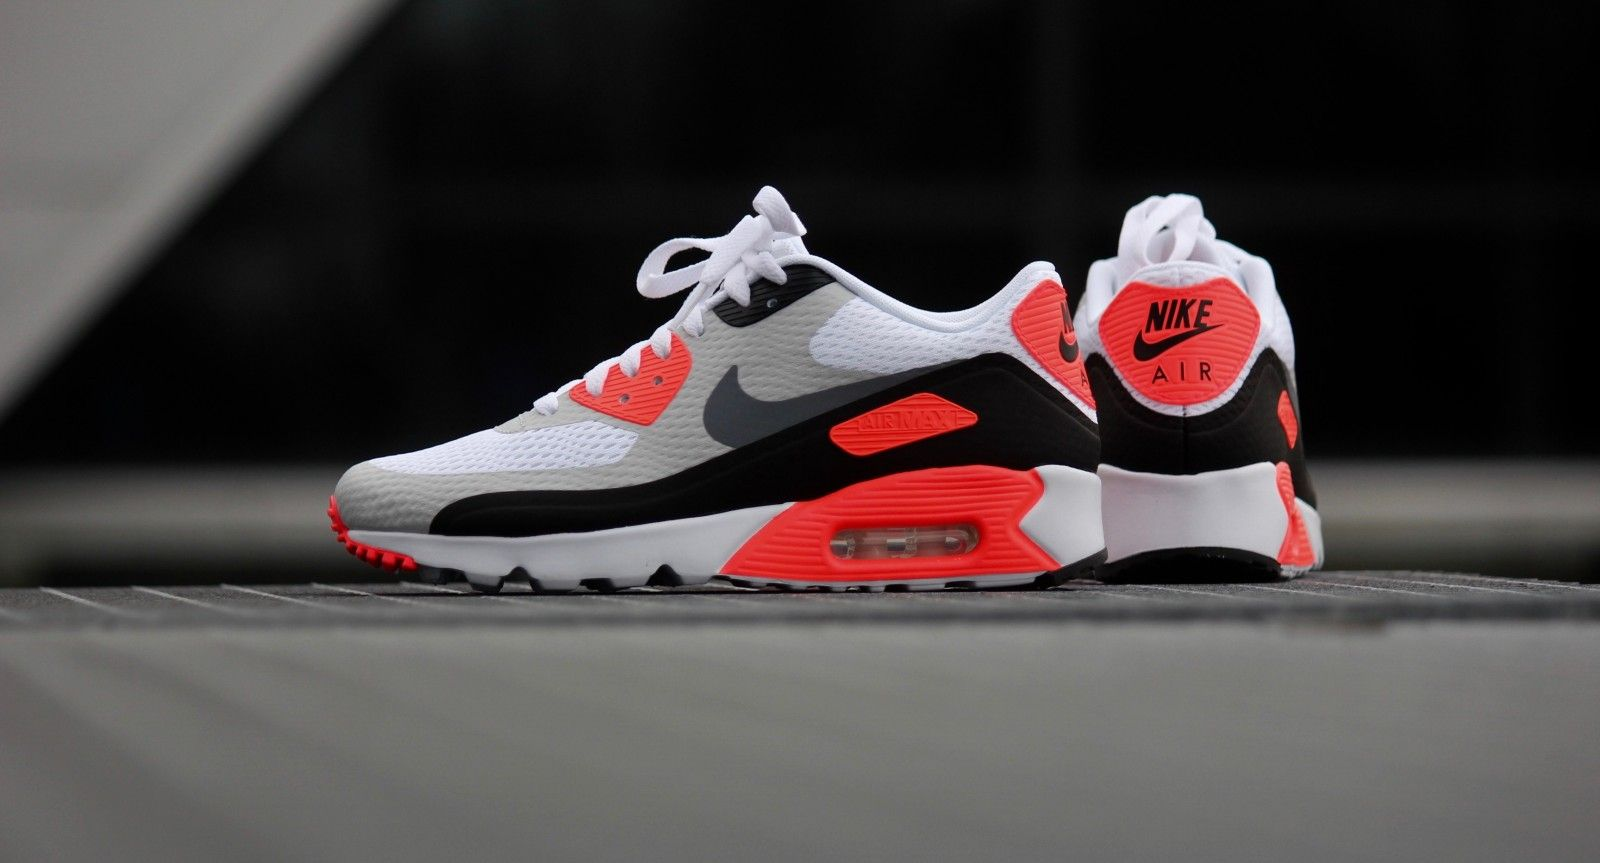 low priced adad4 a632a Nike Air Max 90 Ultra Essential OG Infrared White  CoolGrey - 819474-106